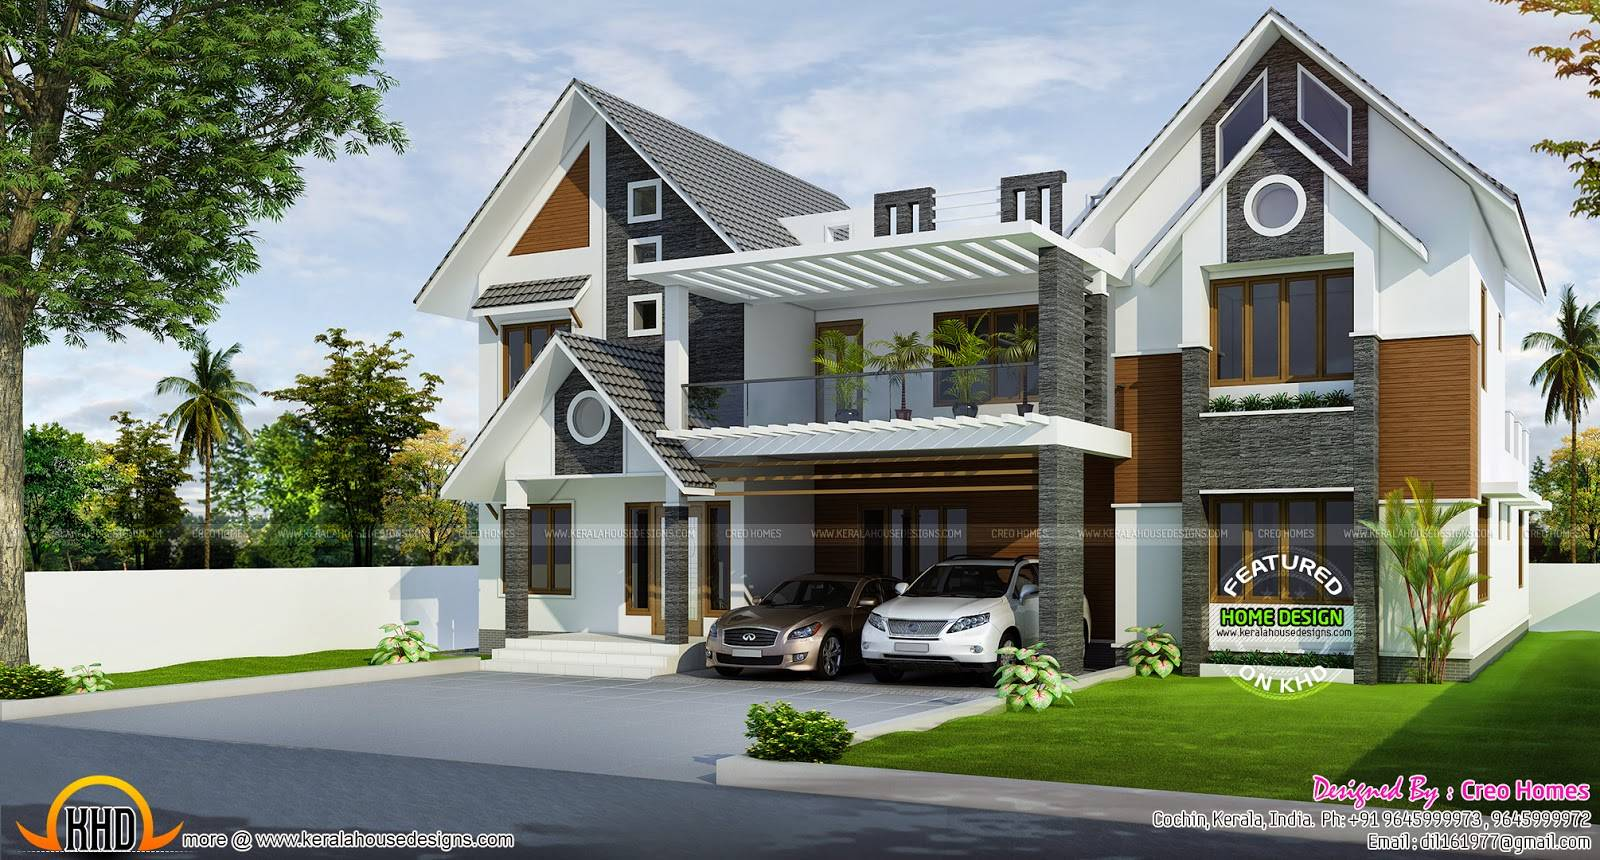 Modern Sloped Roof Home Kerala Design Floor Plans House Plans 12255